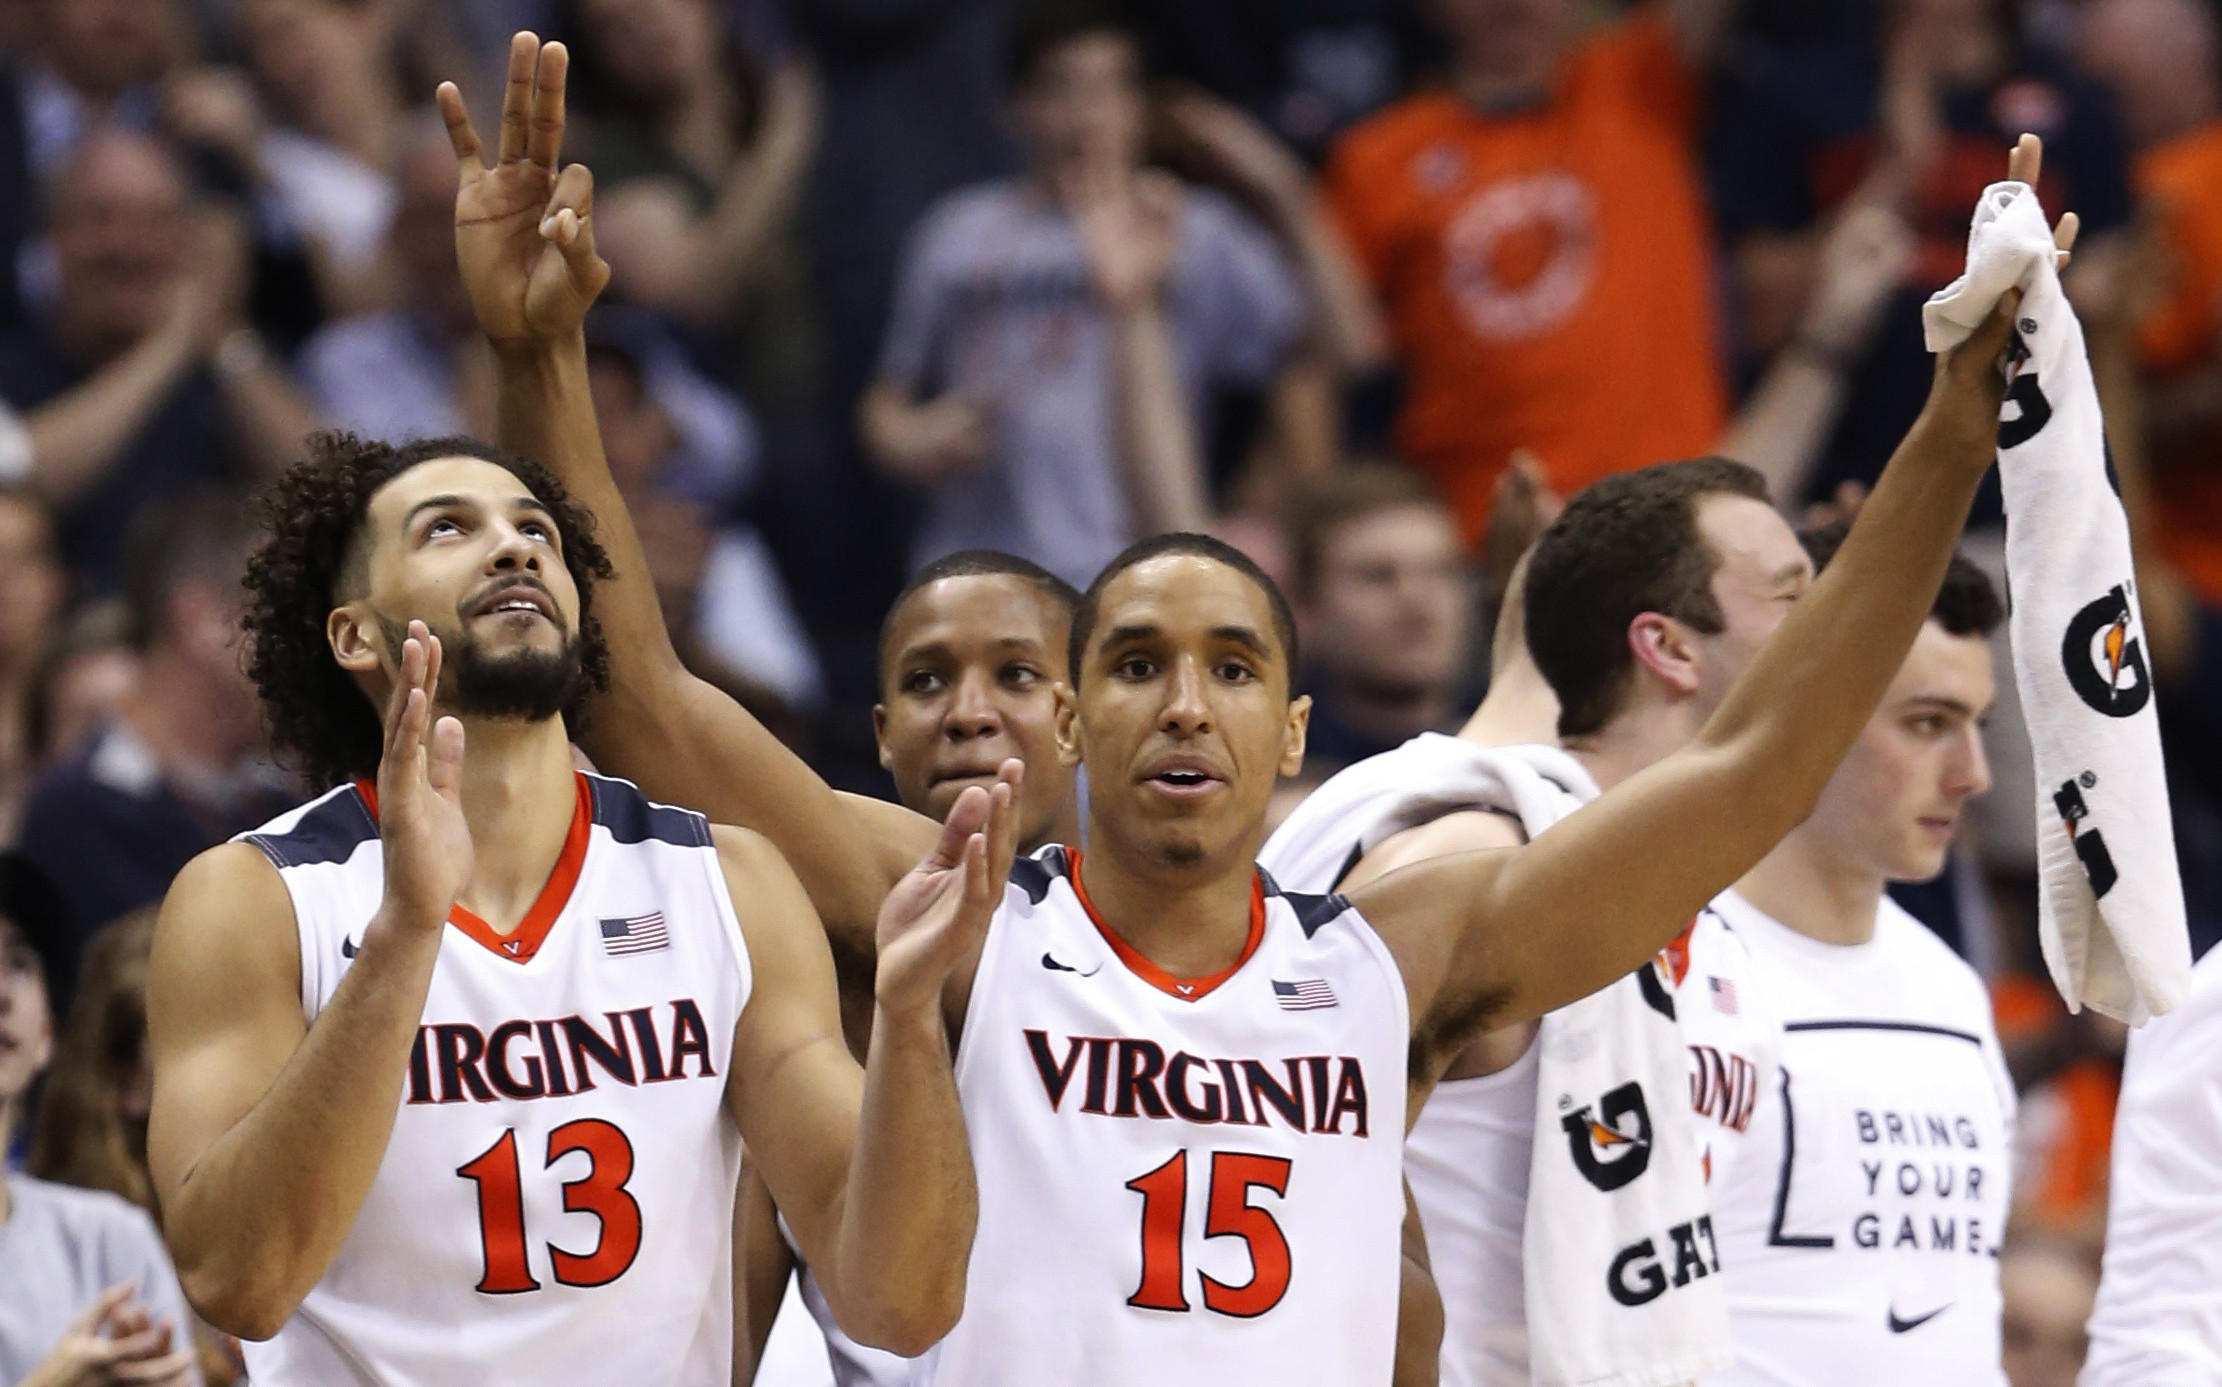 Virginia guard Malcolm Brogdon (15) and forward Anthony Gill (13) cheer their team during the second half against Georgia Tech in an NCAA college basketball game in the Atlantic Coast Conference men's tournament, in Washington on Thursday, March 10, 2016. Virginia defeated Georgia Tech 72-52. (AP Photo/Steve Helber)